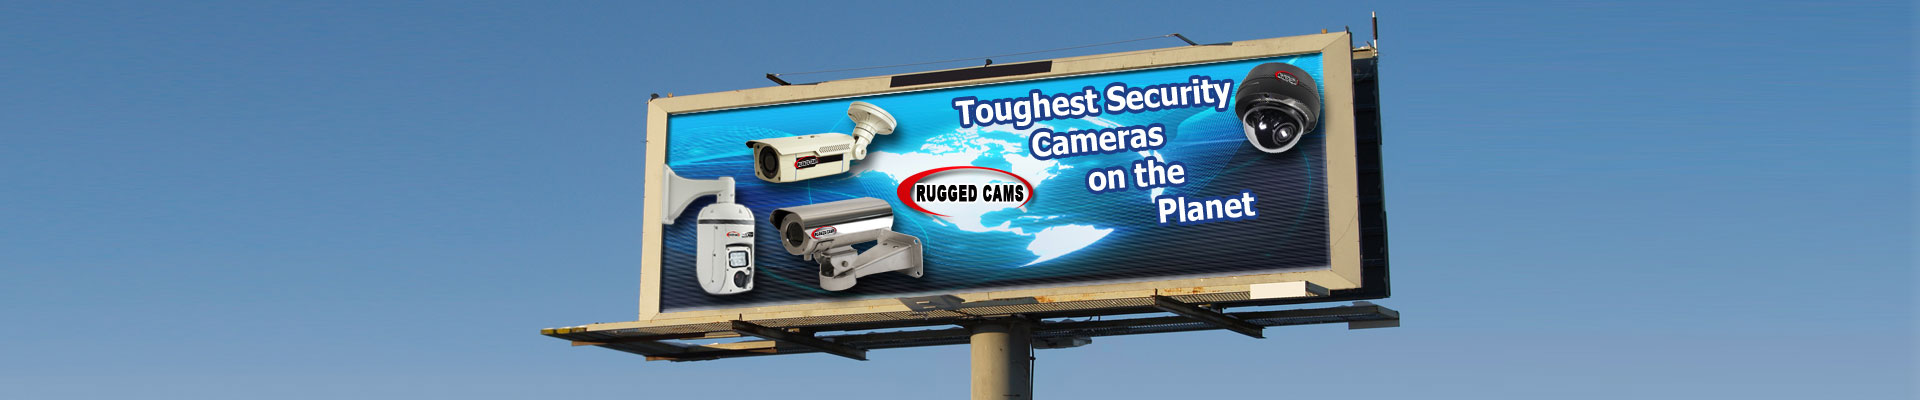 Rugged Cams toughest security cameras on the planet image